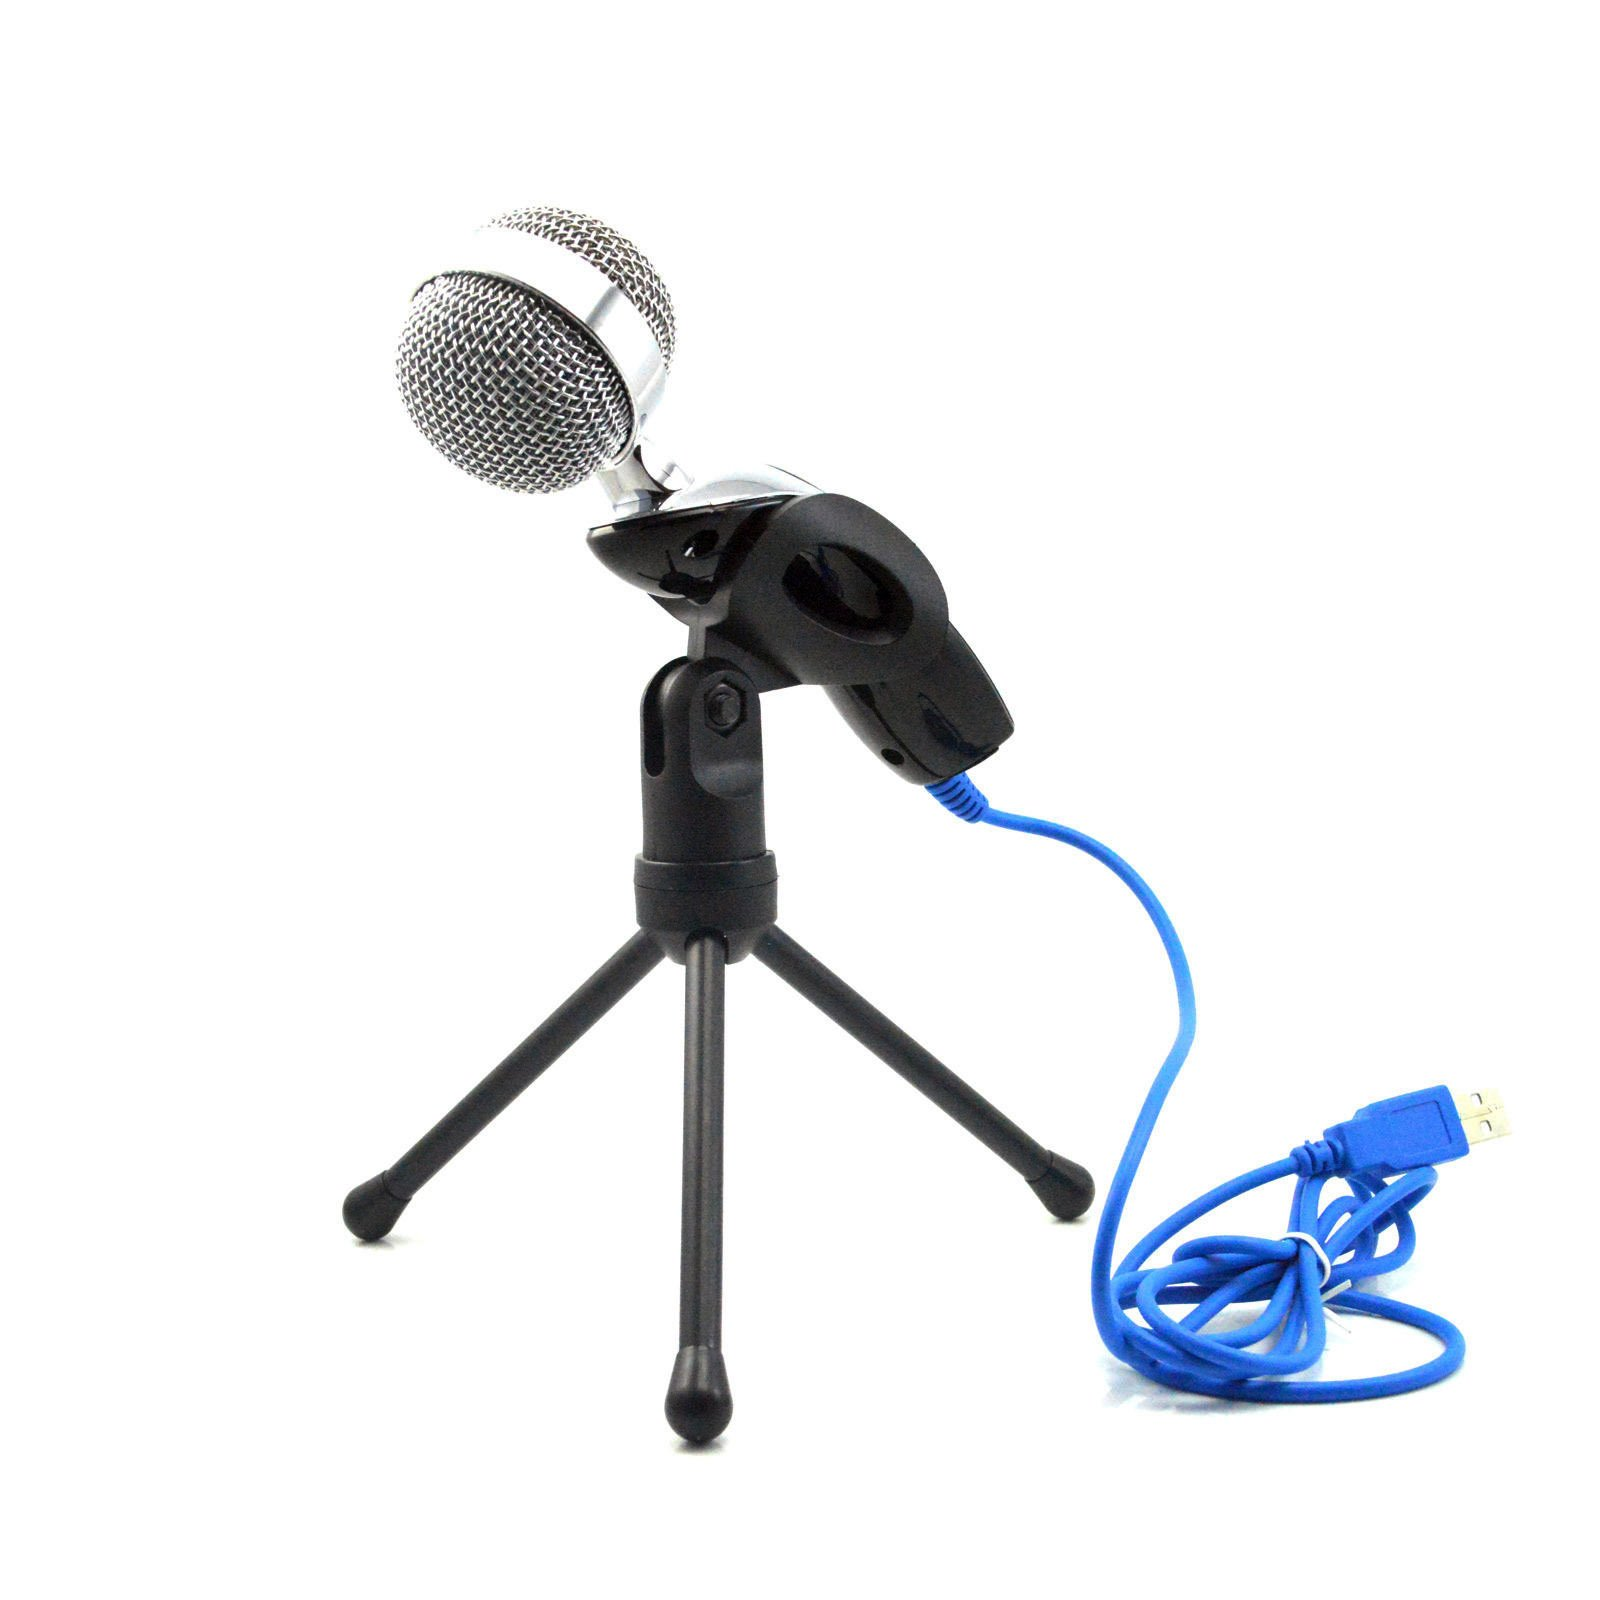 Condenser Microphone 3.5mm Jeystar Jack Plug and Play for PC Laptop Desktop Ideal Reccording for YouTube Live Broadcast Business Teleconference Skype (Black USB)